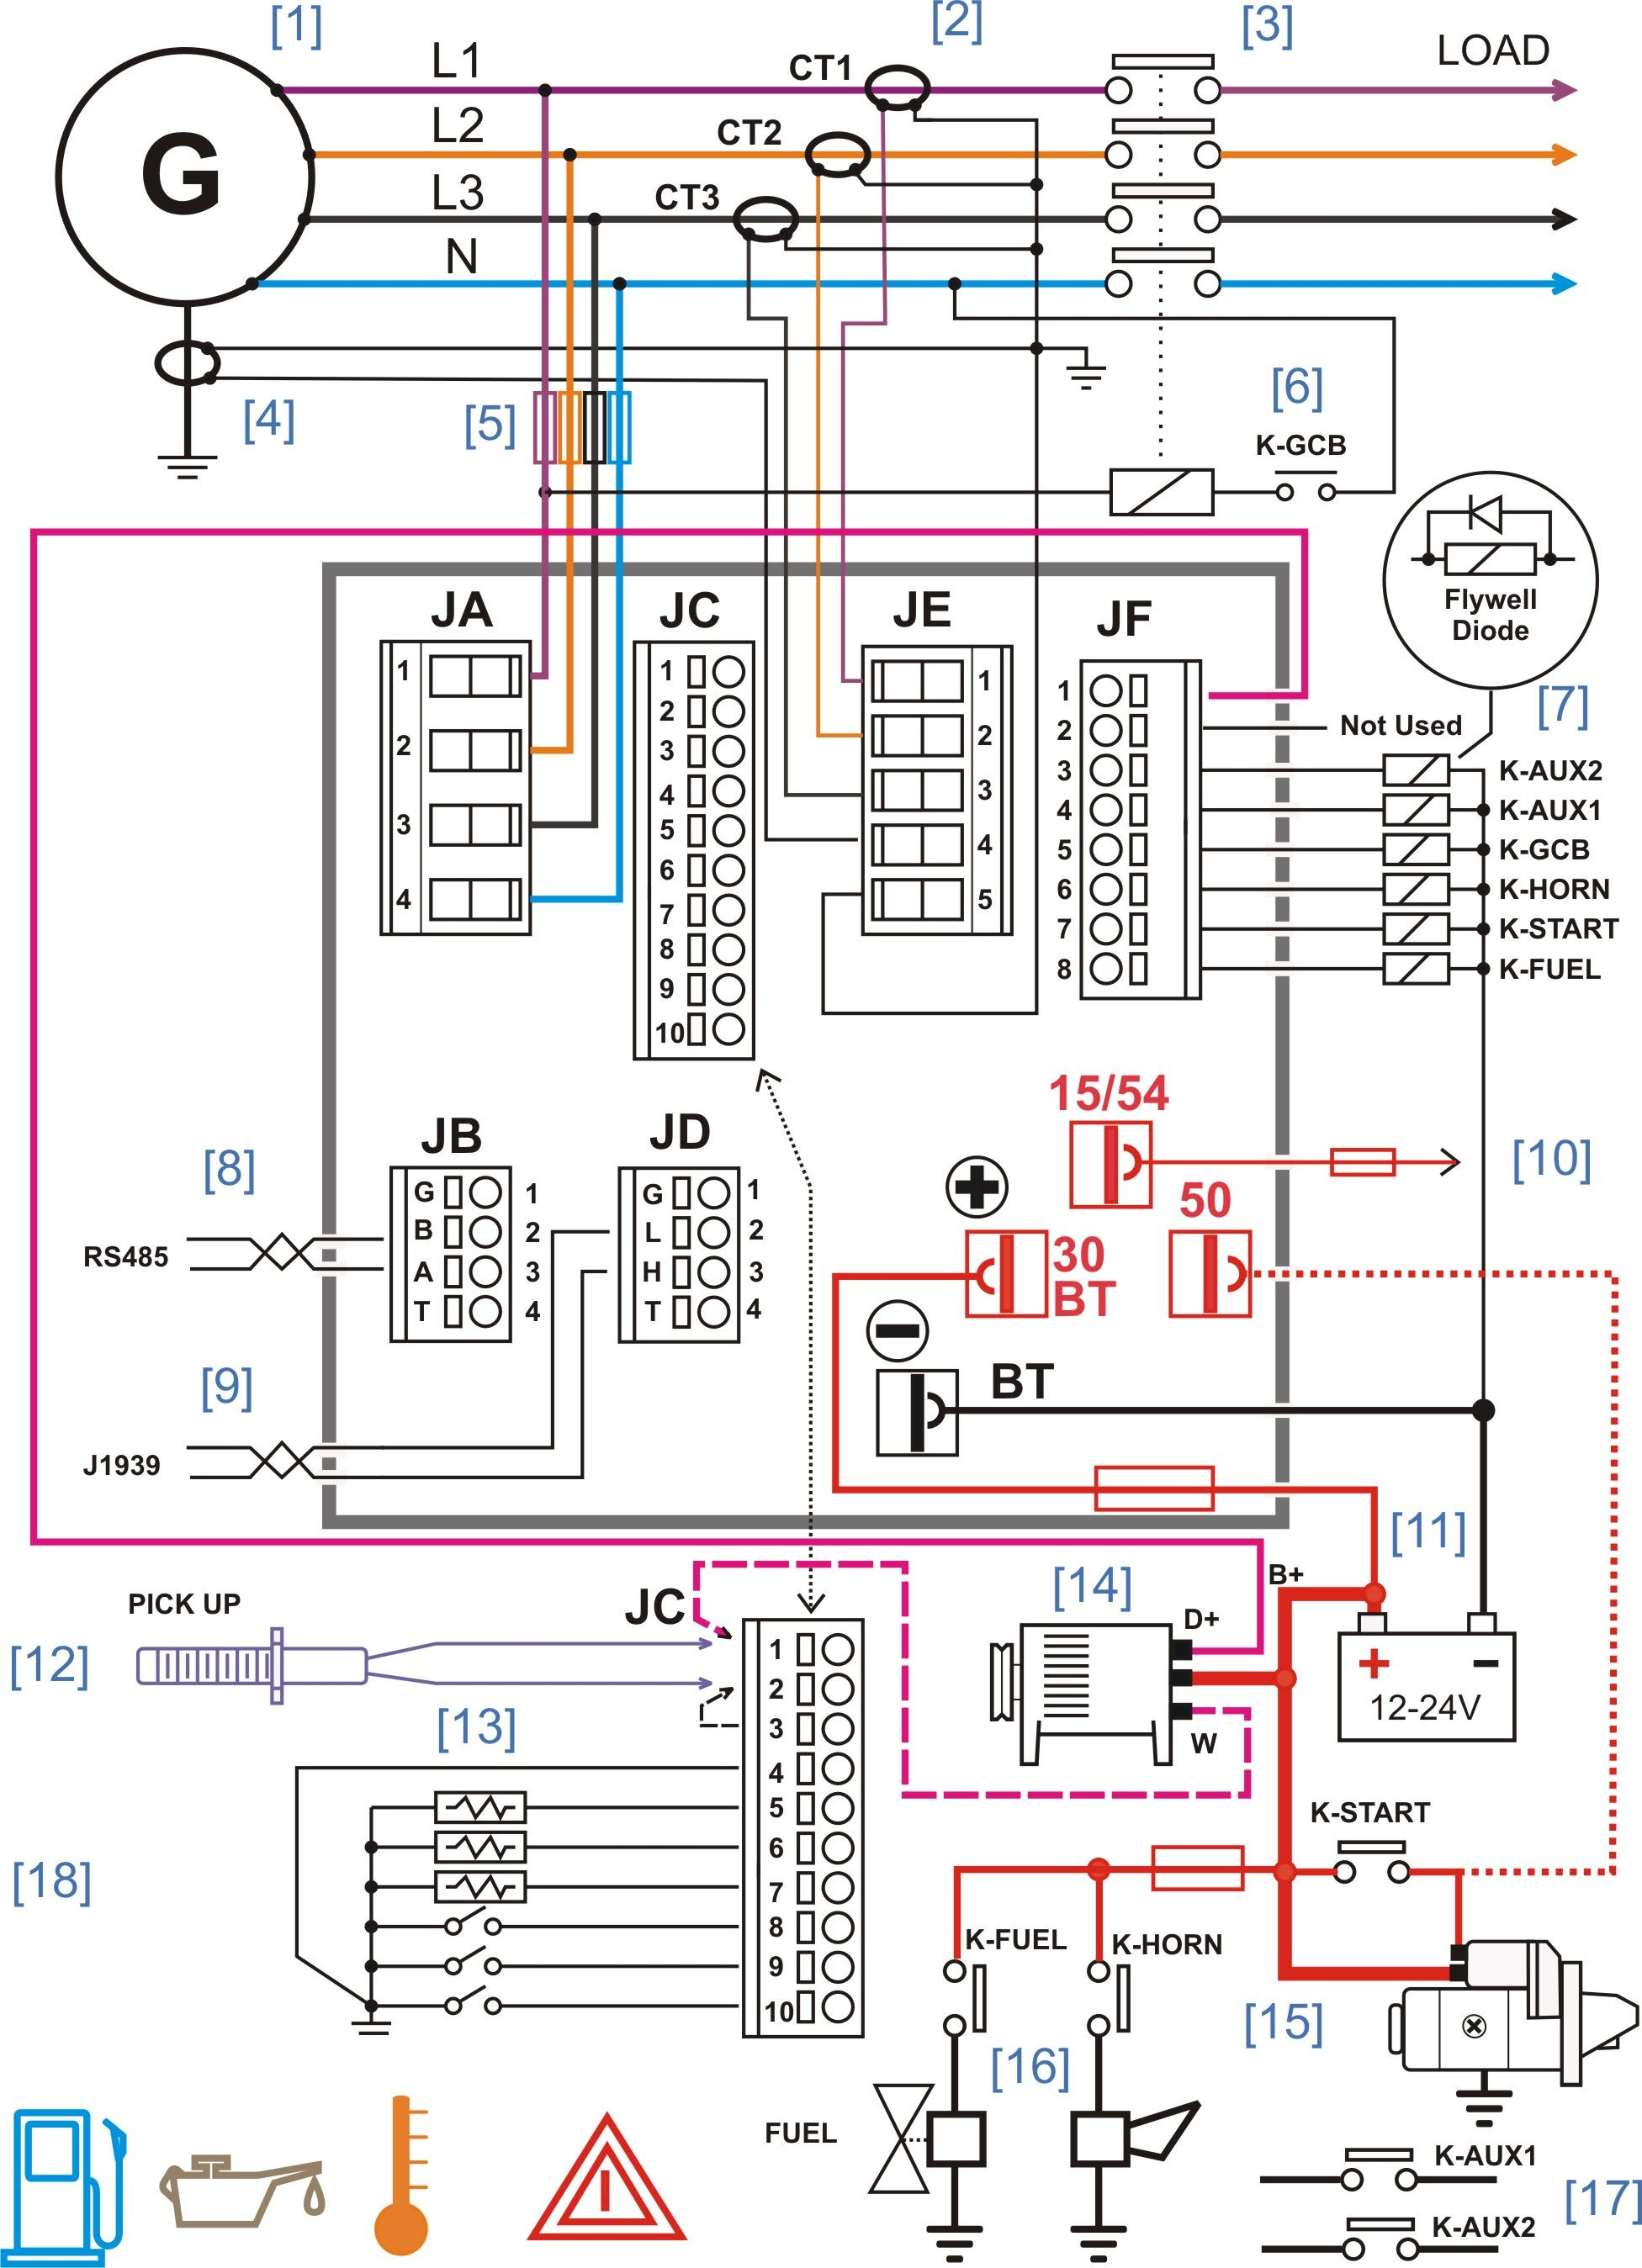 franklin control box wiring diagram diesel generator control panel wiring diagram | diesel ... #8